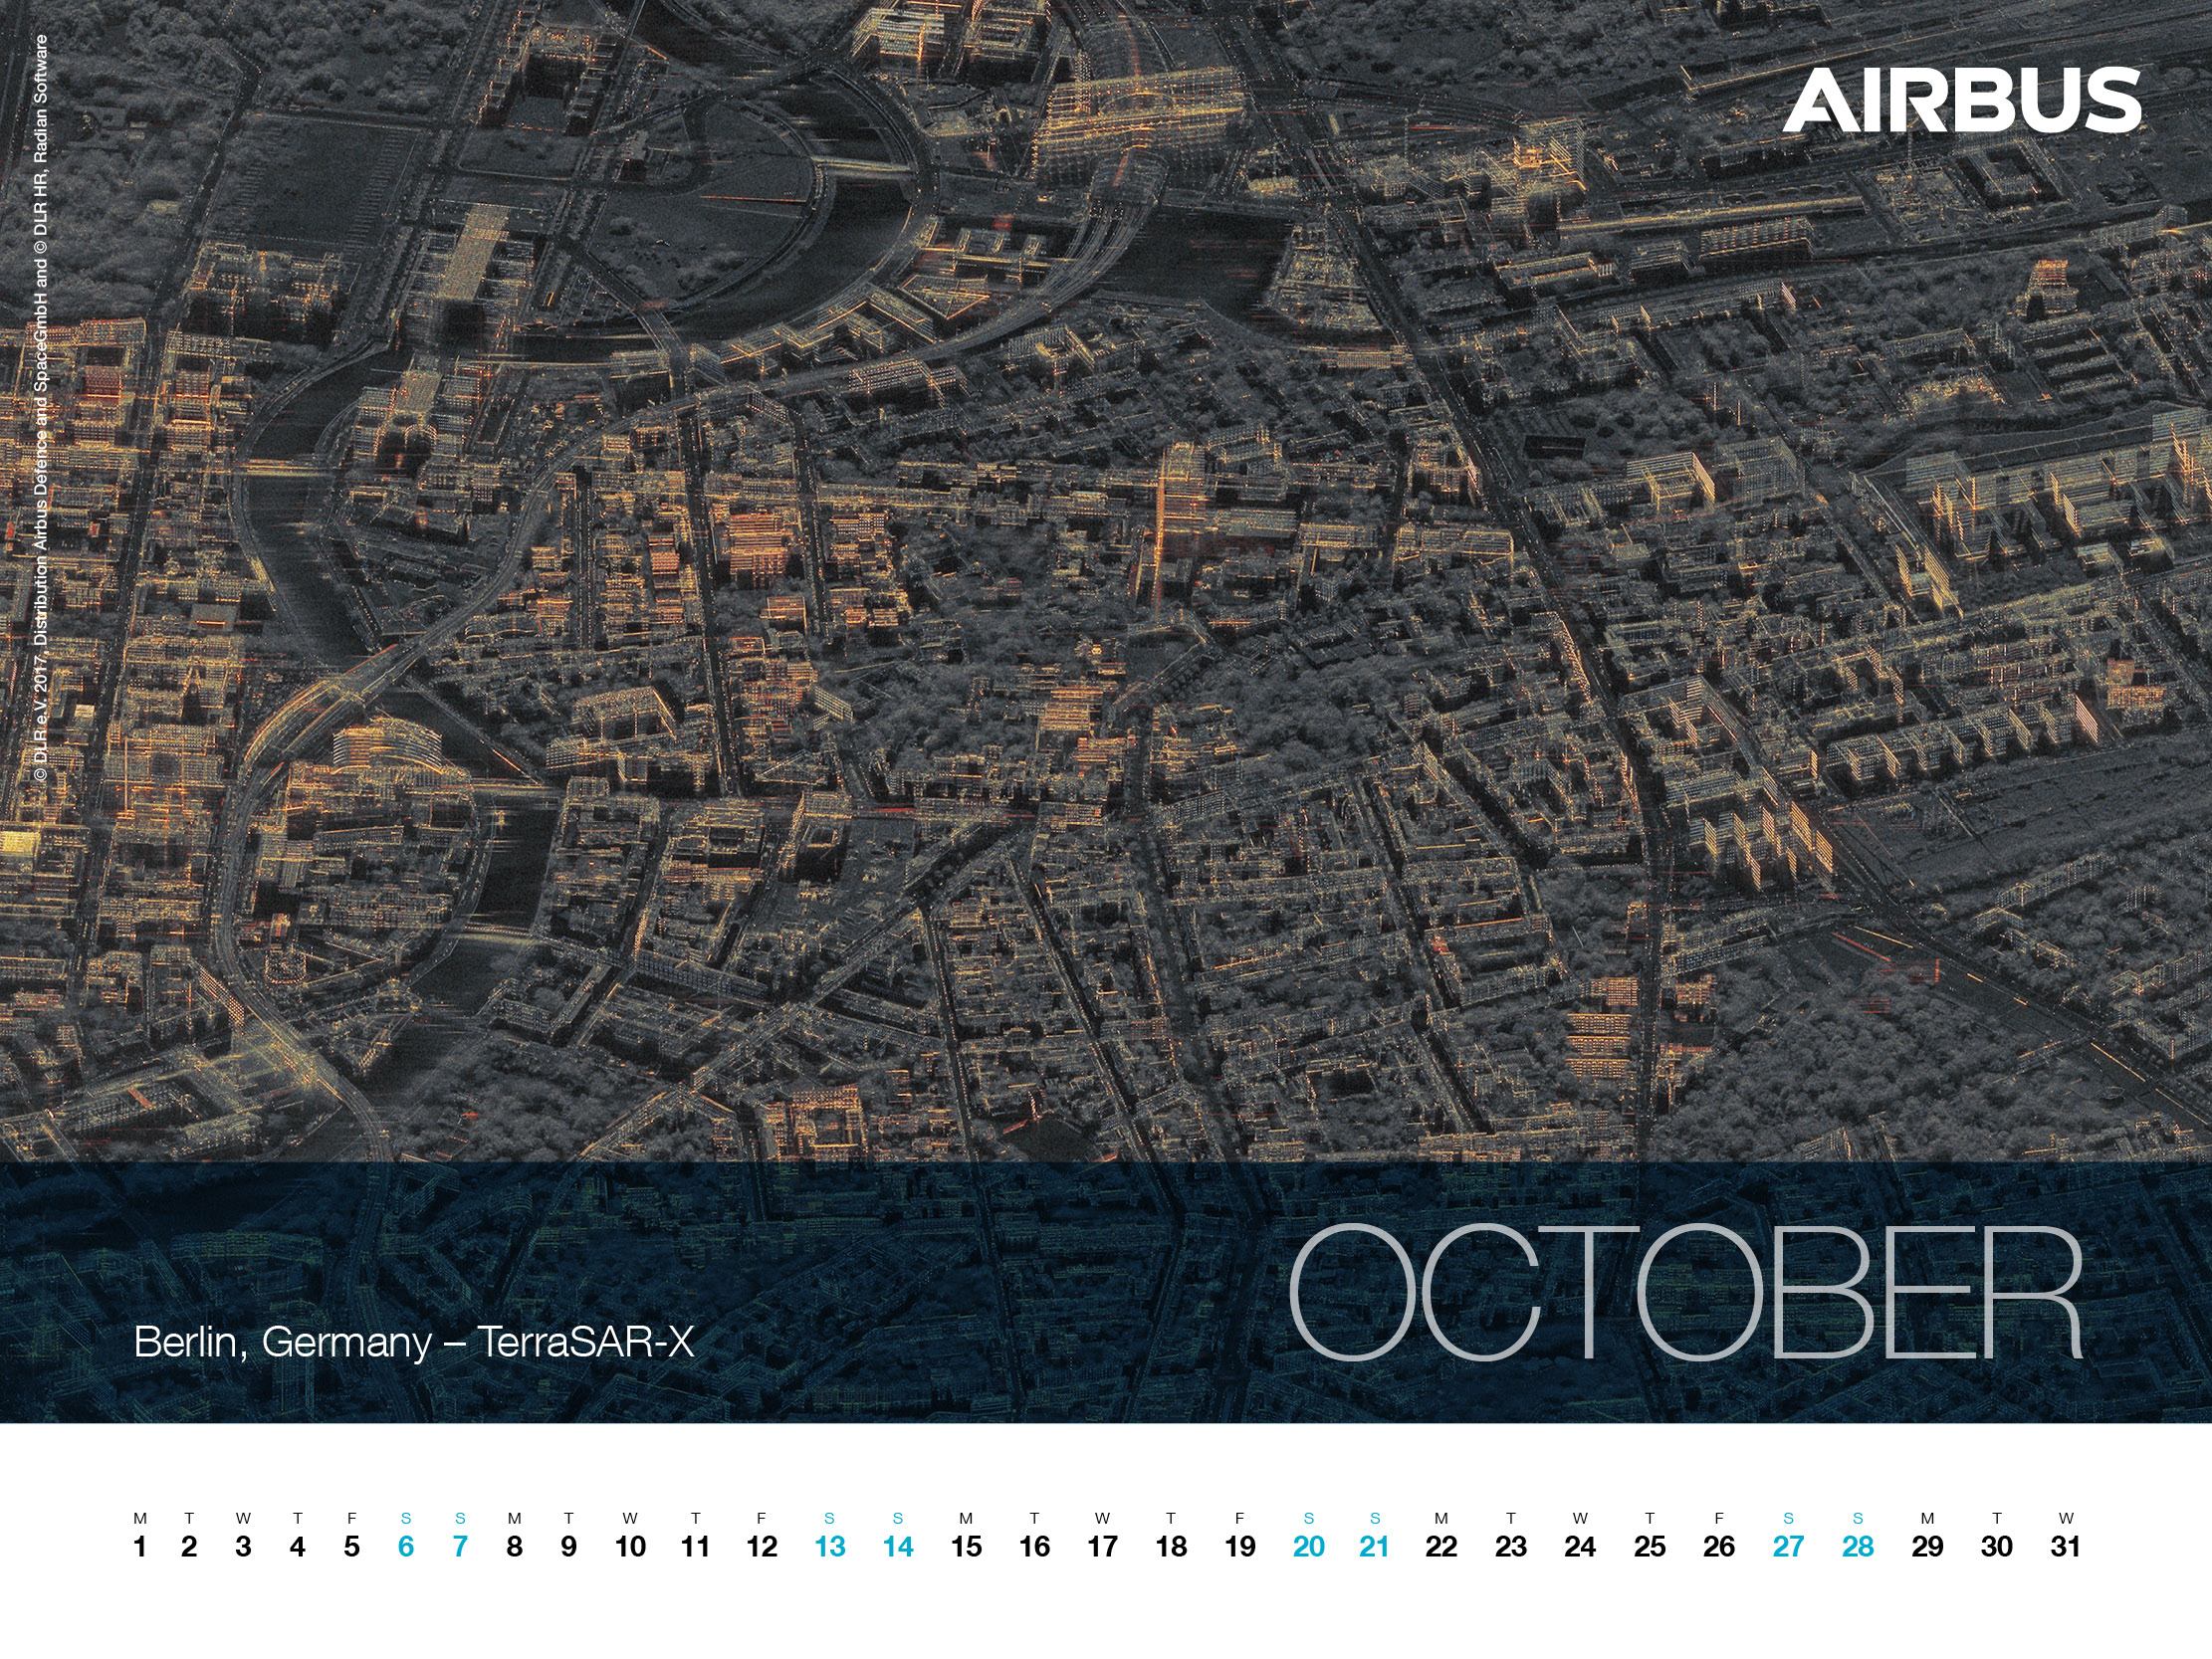 Calendar 2018 - October - Berlin, Germany - TerraSAR-X - 1600x1200